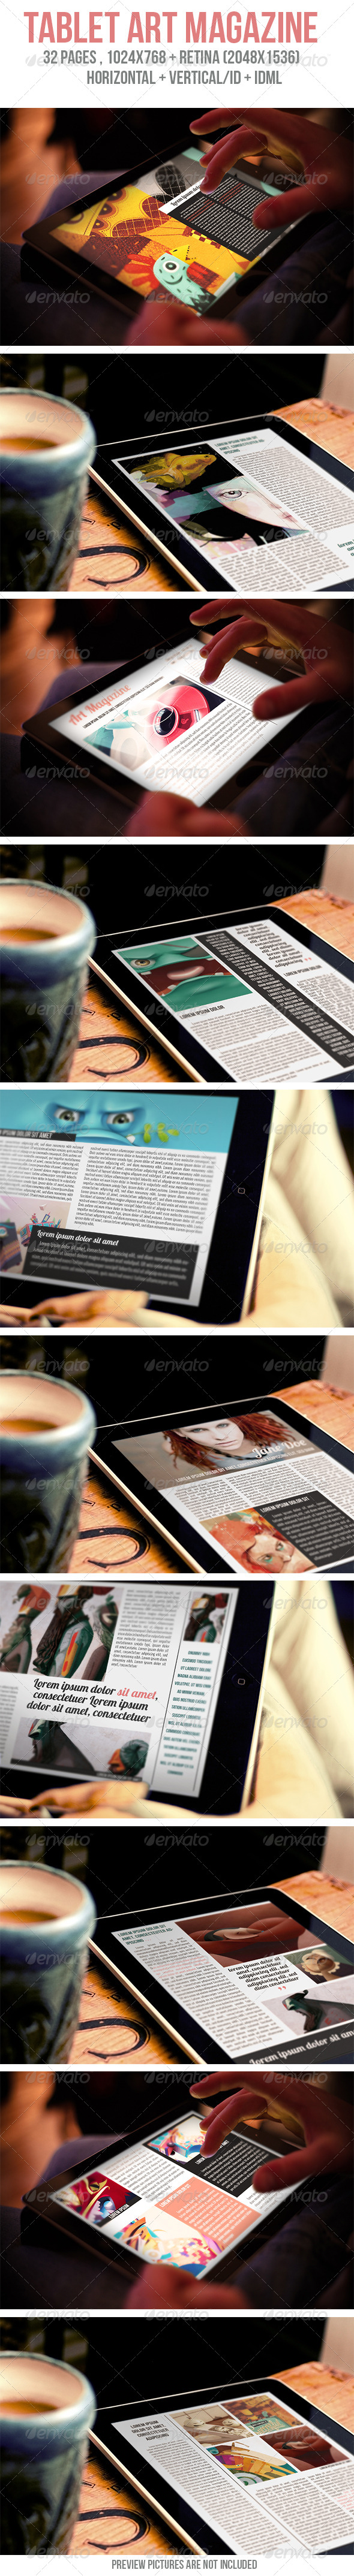 GraphicRiver Tablet Art Magazine 5993724